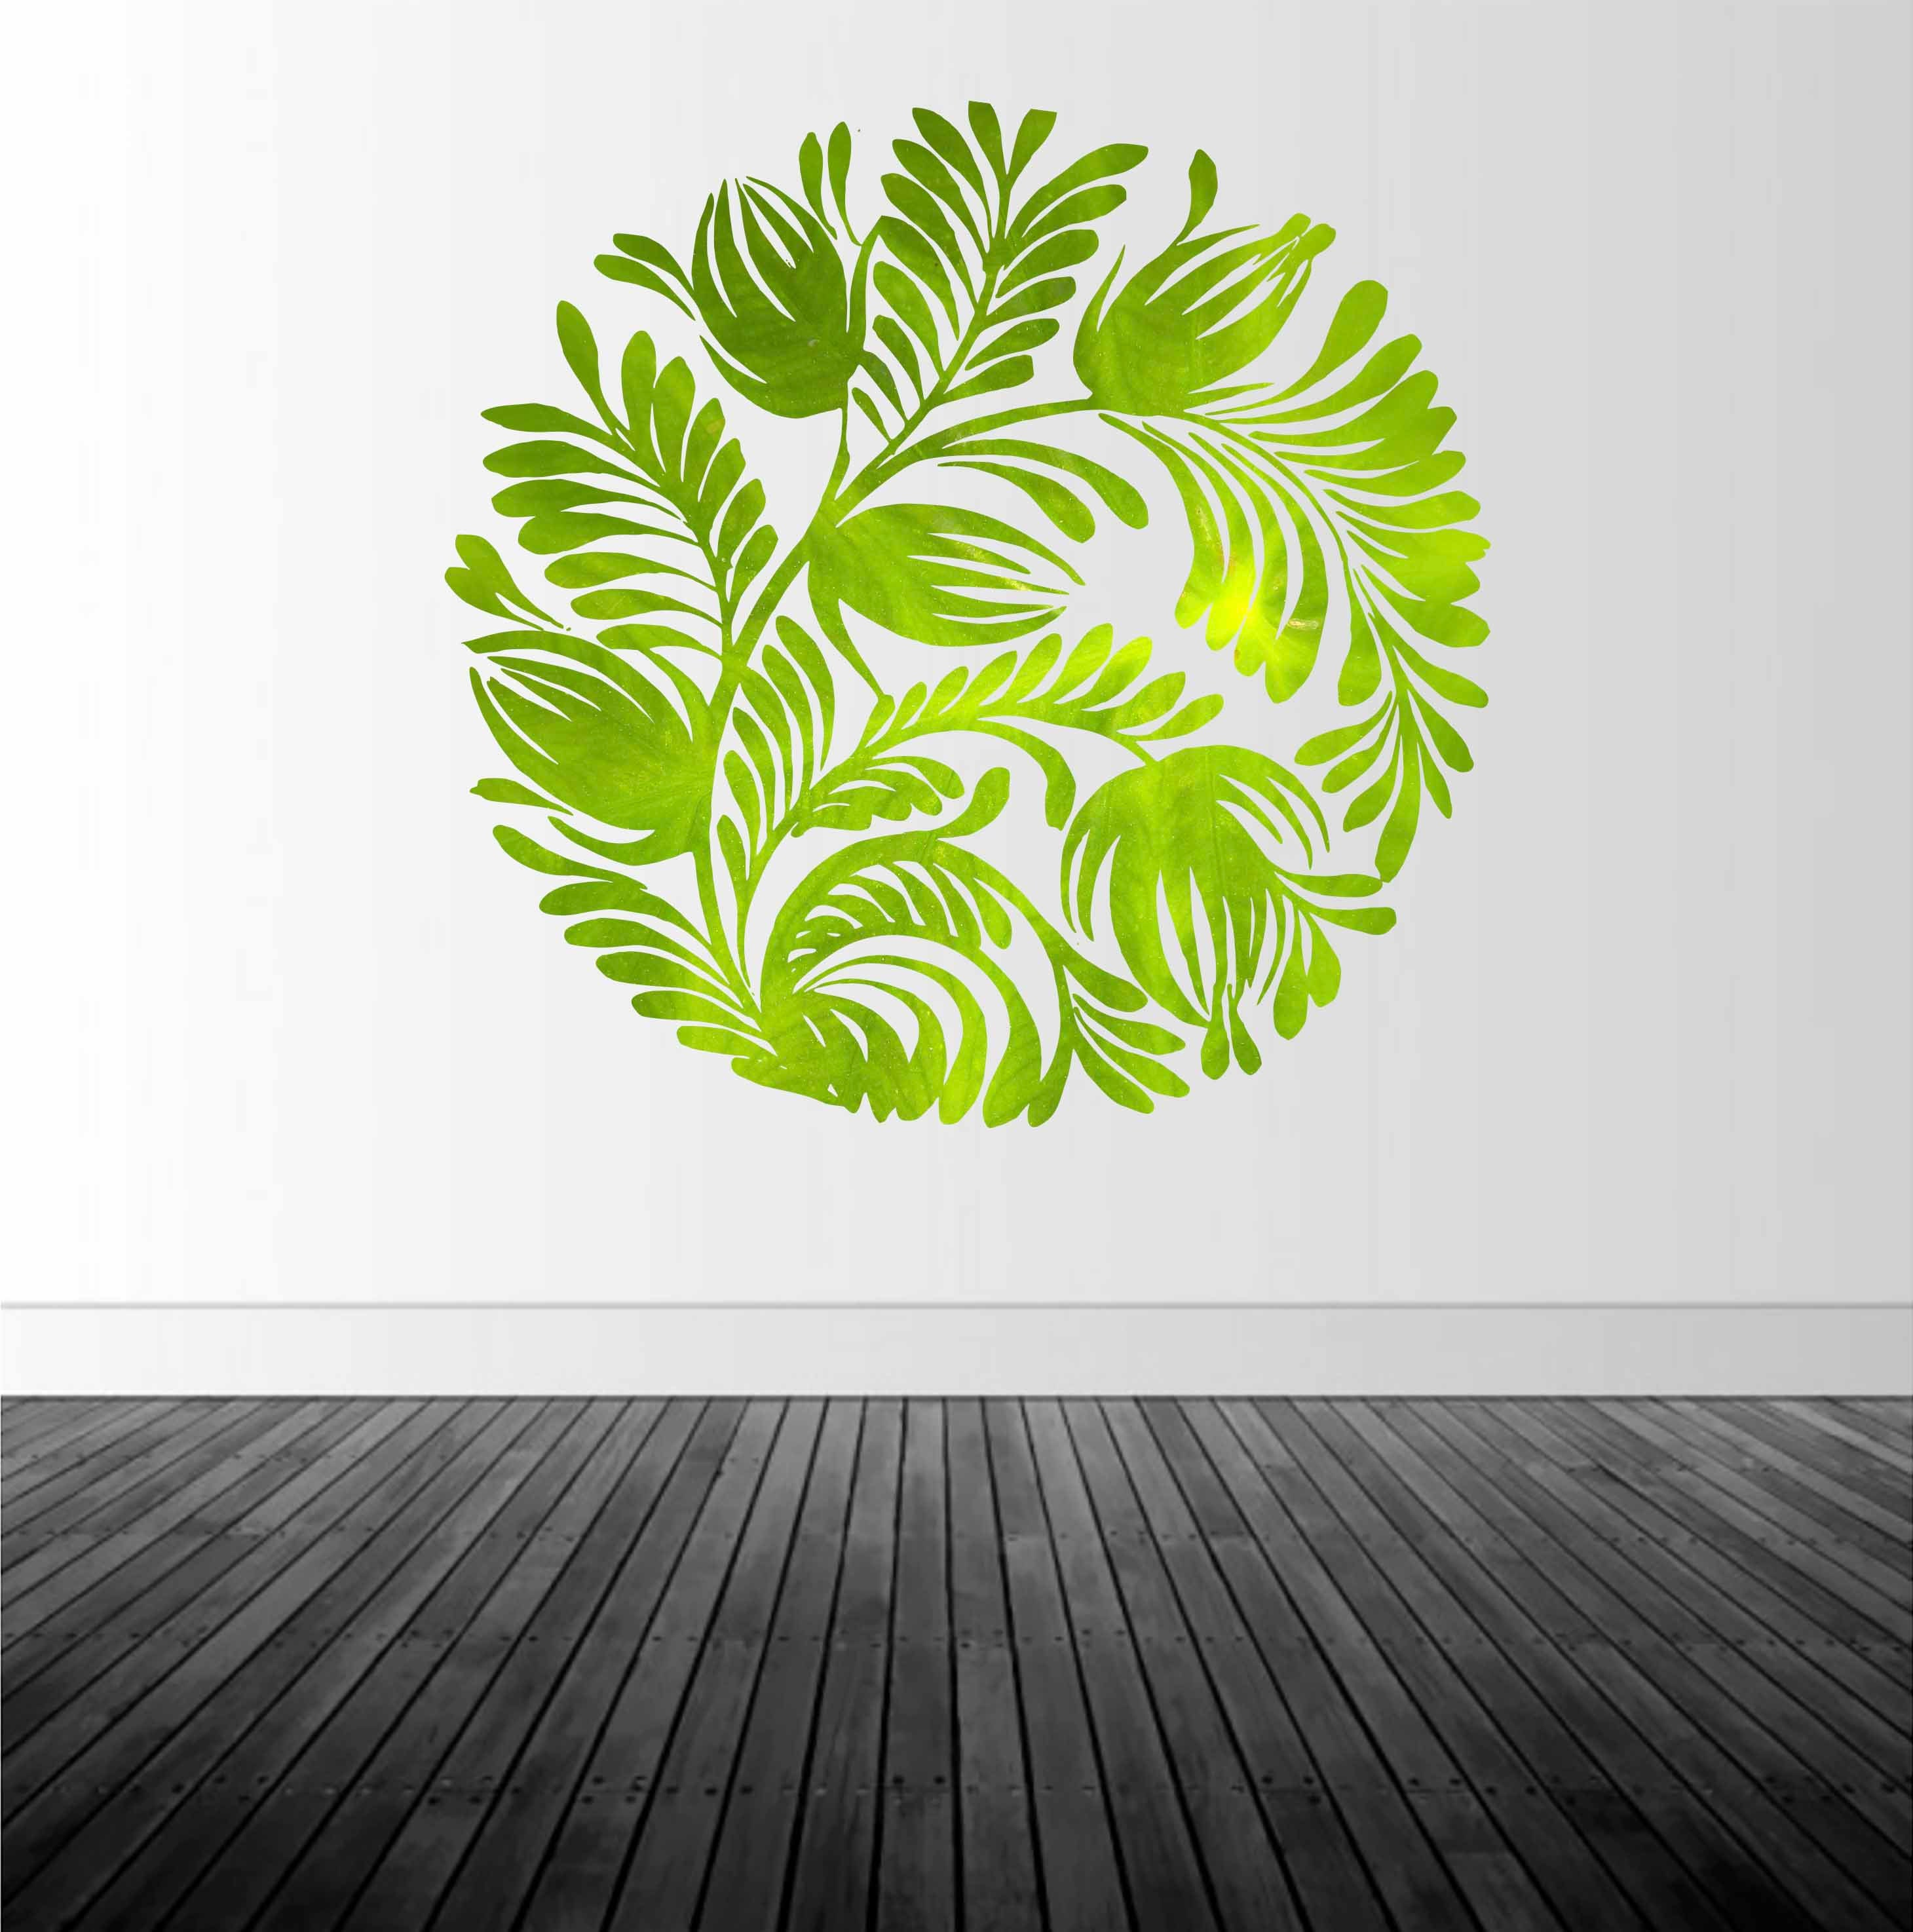 Home Decor Vinyl Wall Decal Wall Sticker Leaf Decal Leaf Texture